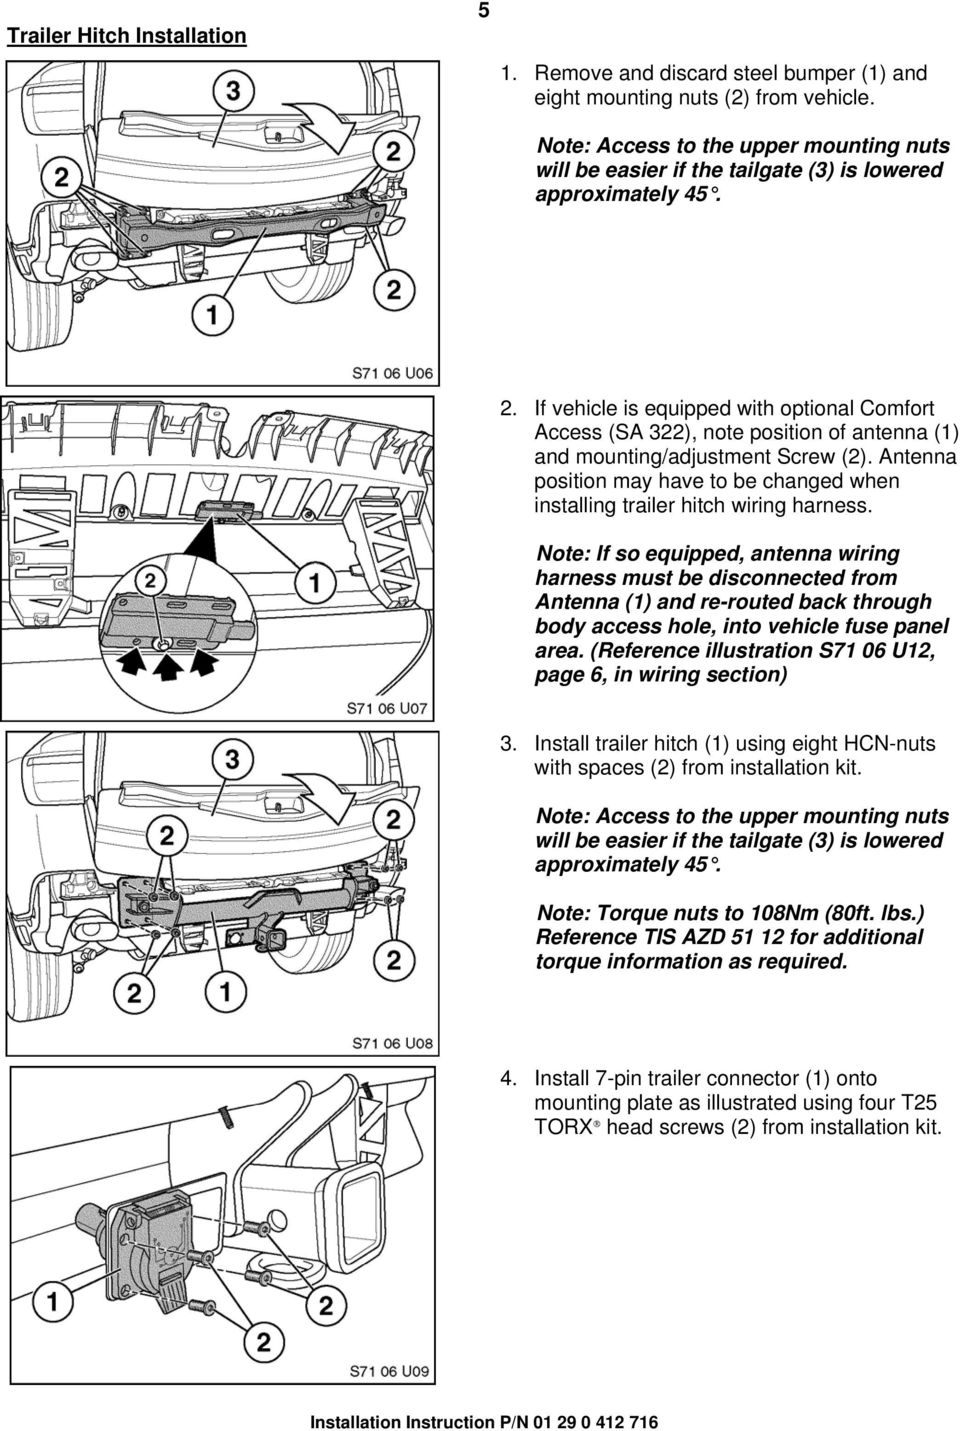 medium resolution of if vehicle is equipped with optional comfort access sa 322 note position of